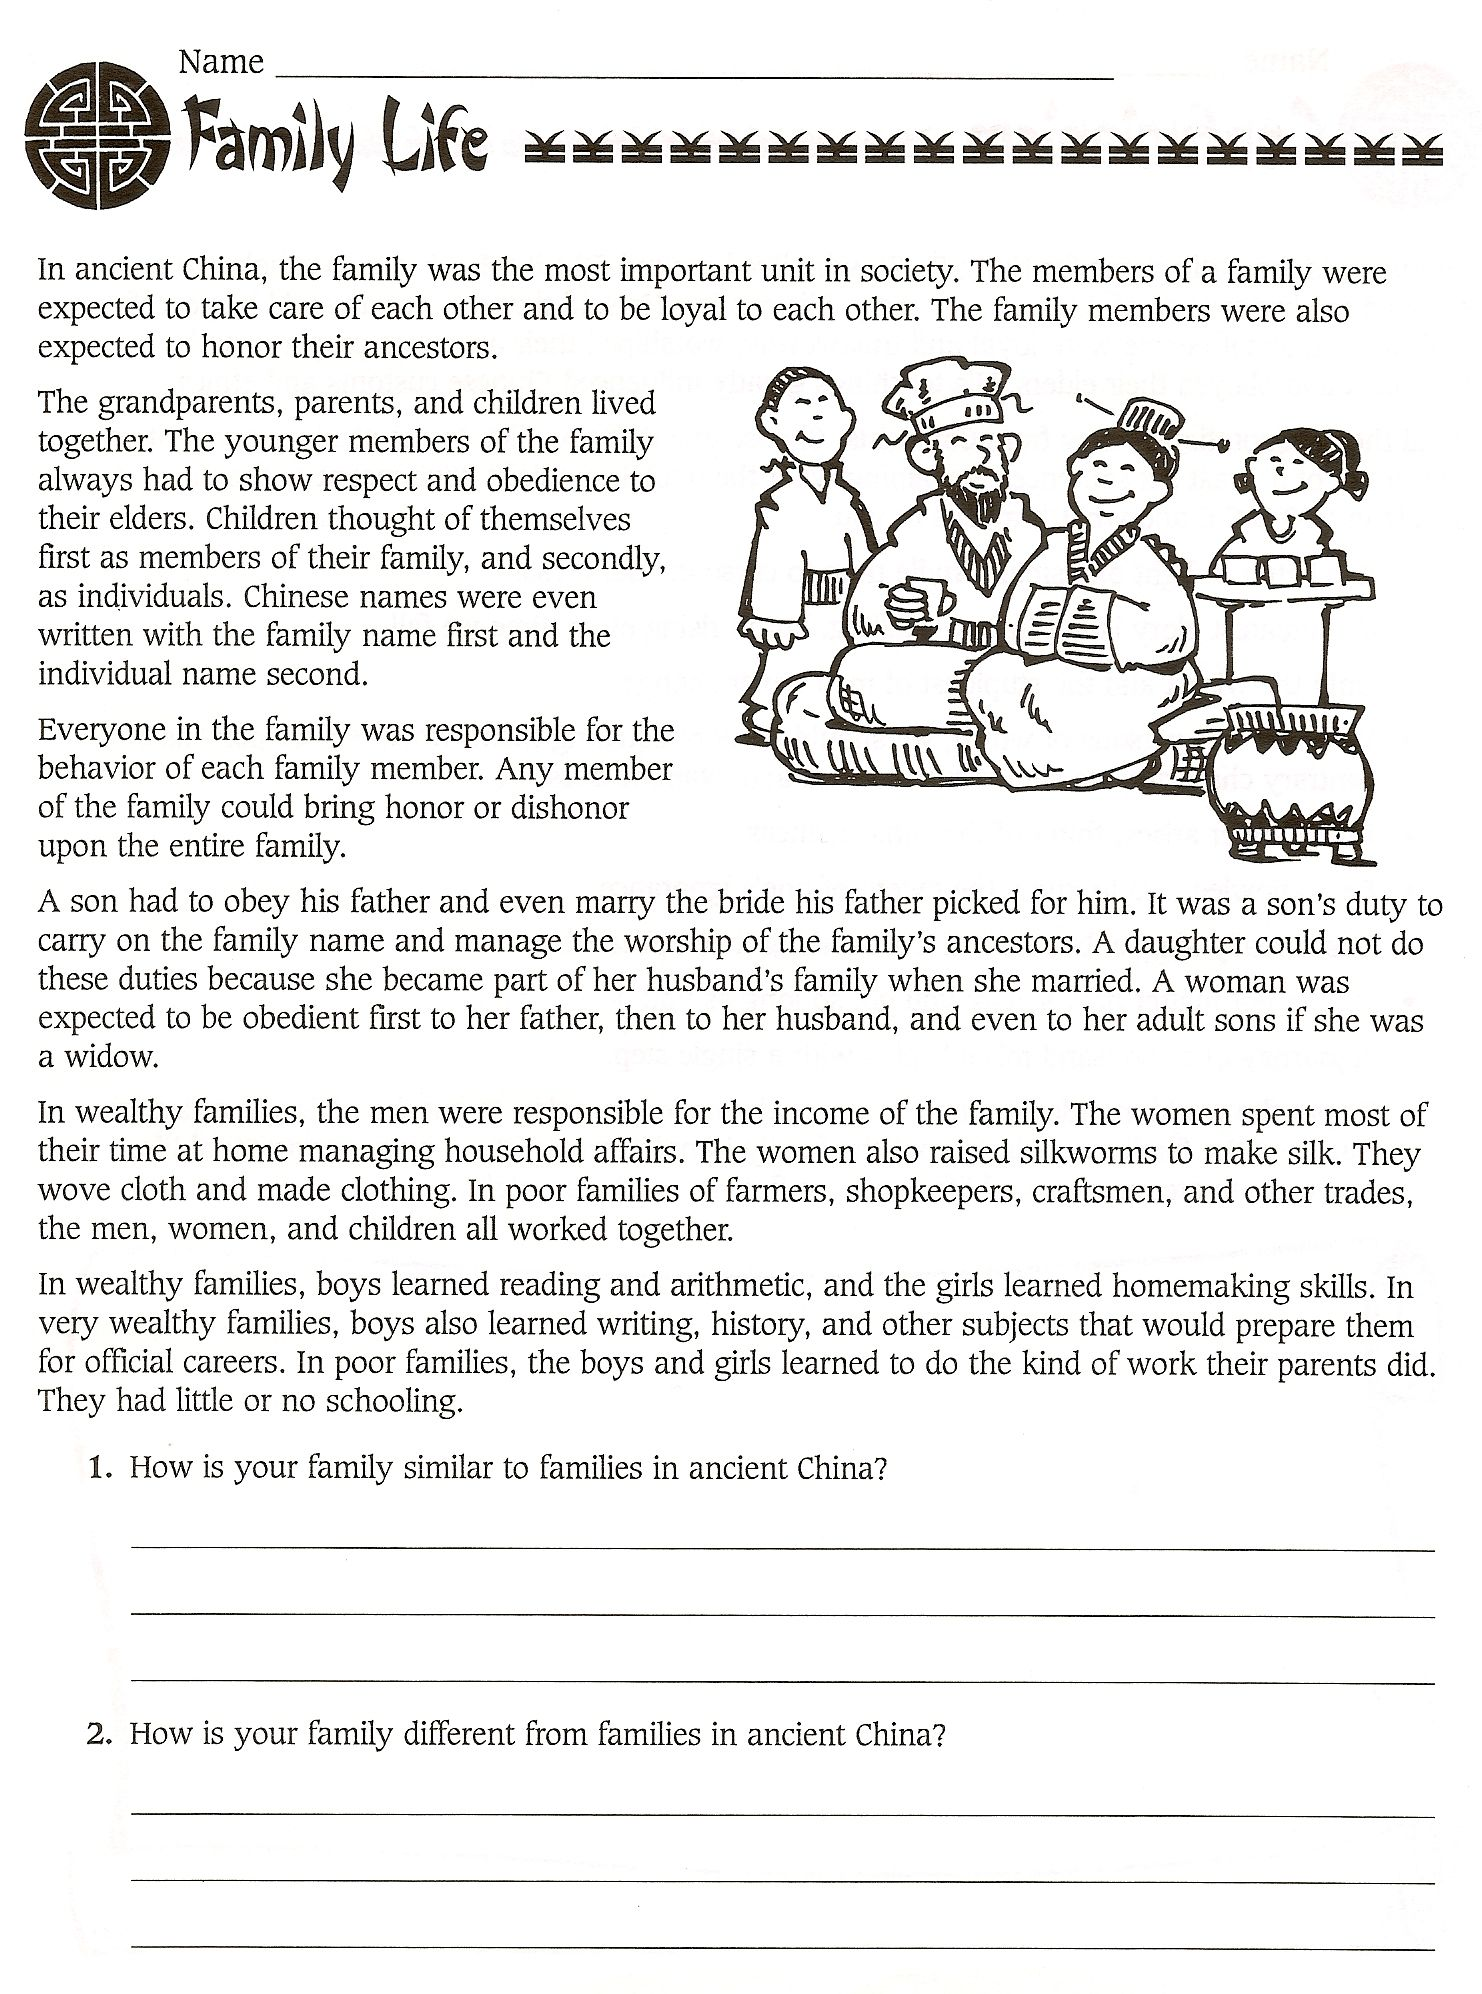 Worksheets Sixth Grade Social Studies Worksheets 6th grade social studies ancient china worksheets free free